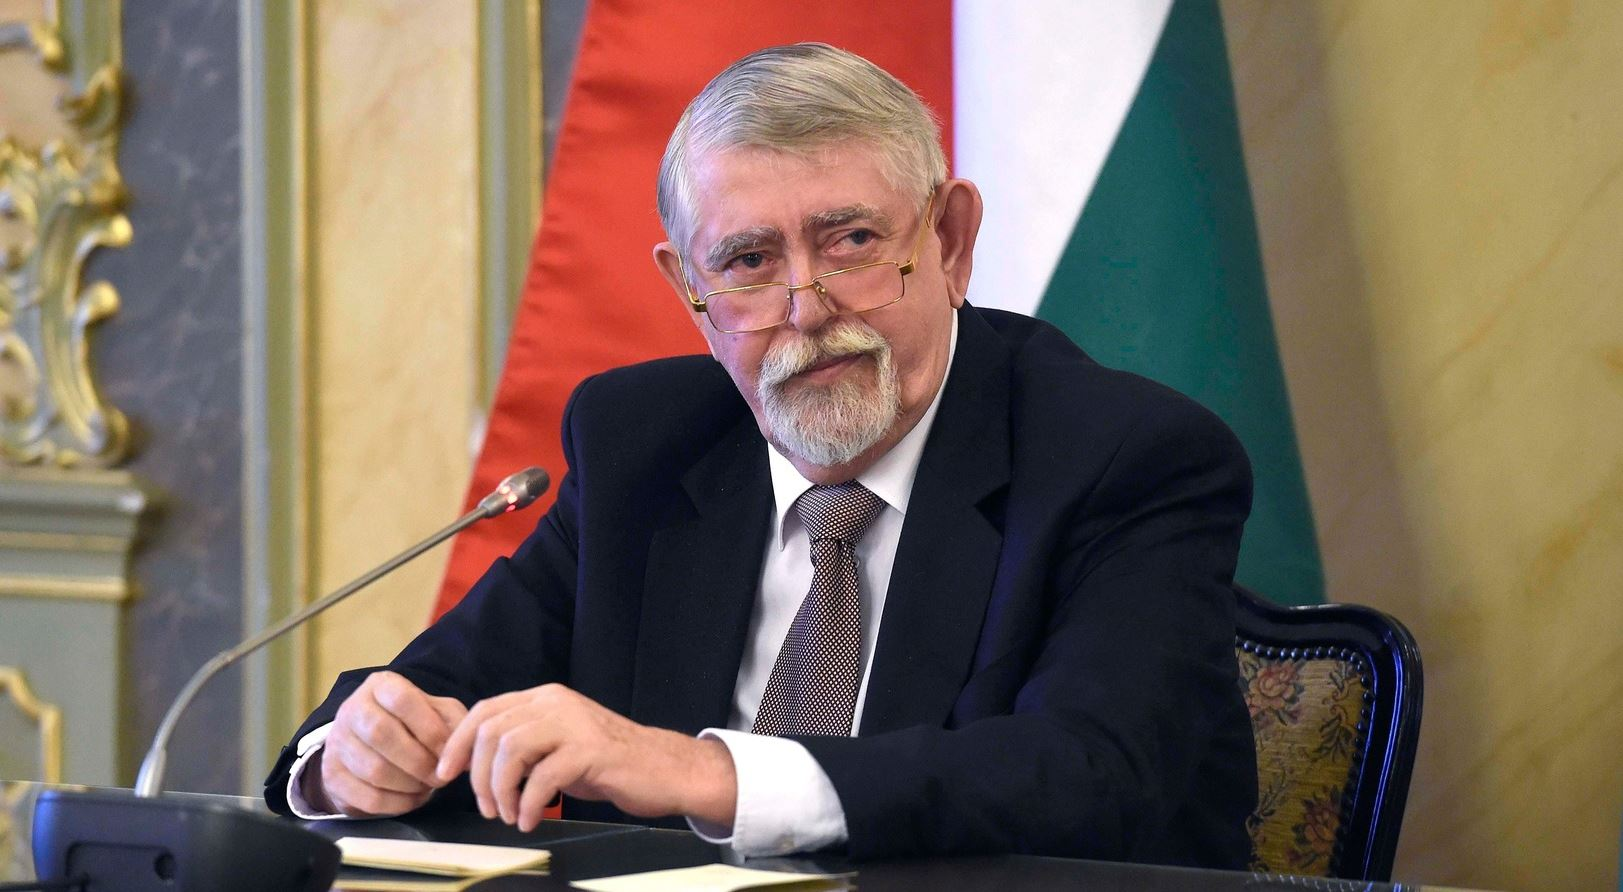 Hungarian State Awards Will Be Presented On 20 August